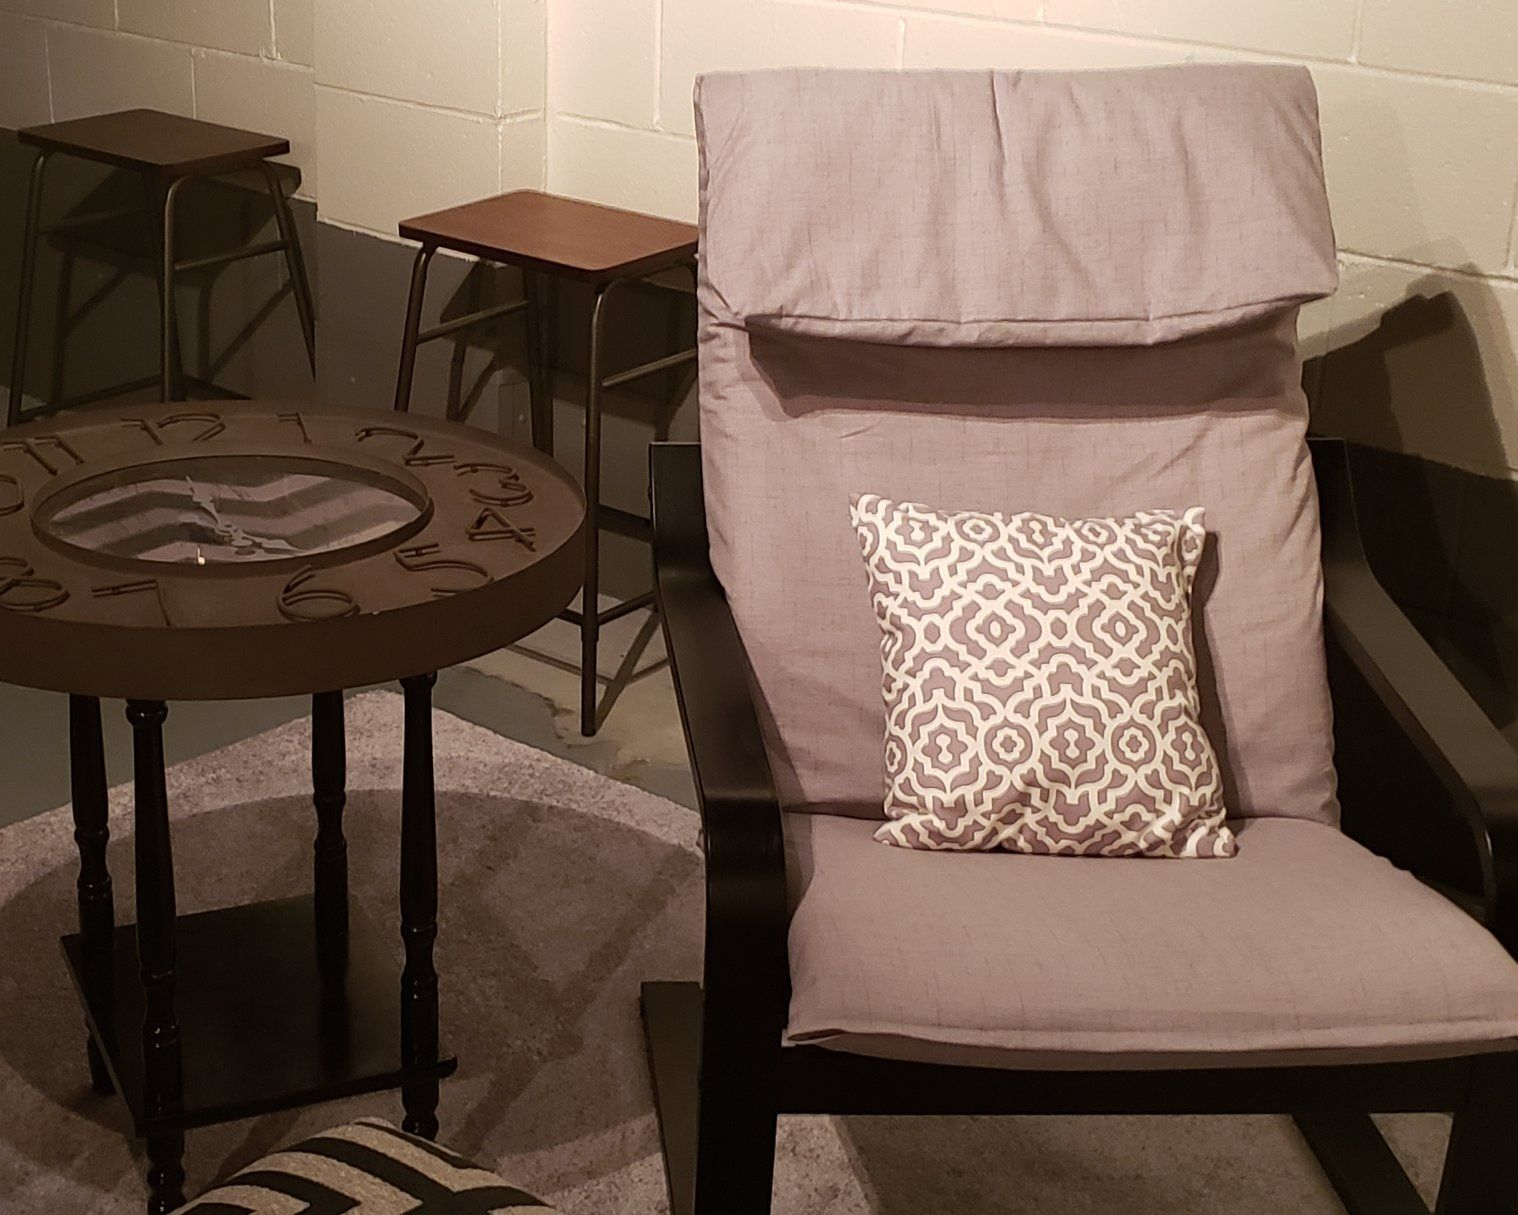 How to Slipcover IKEA or Patio Chair Cushions Slipcovers